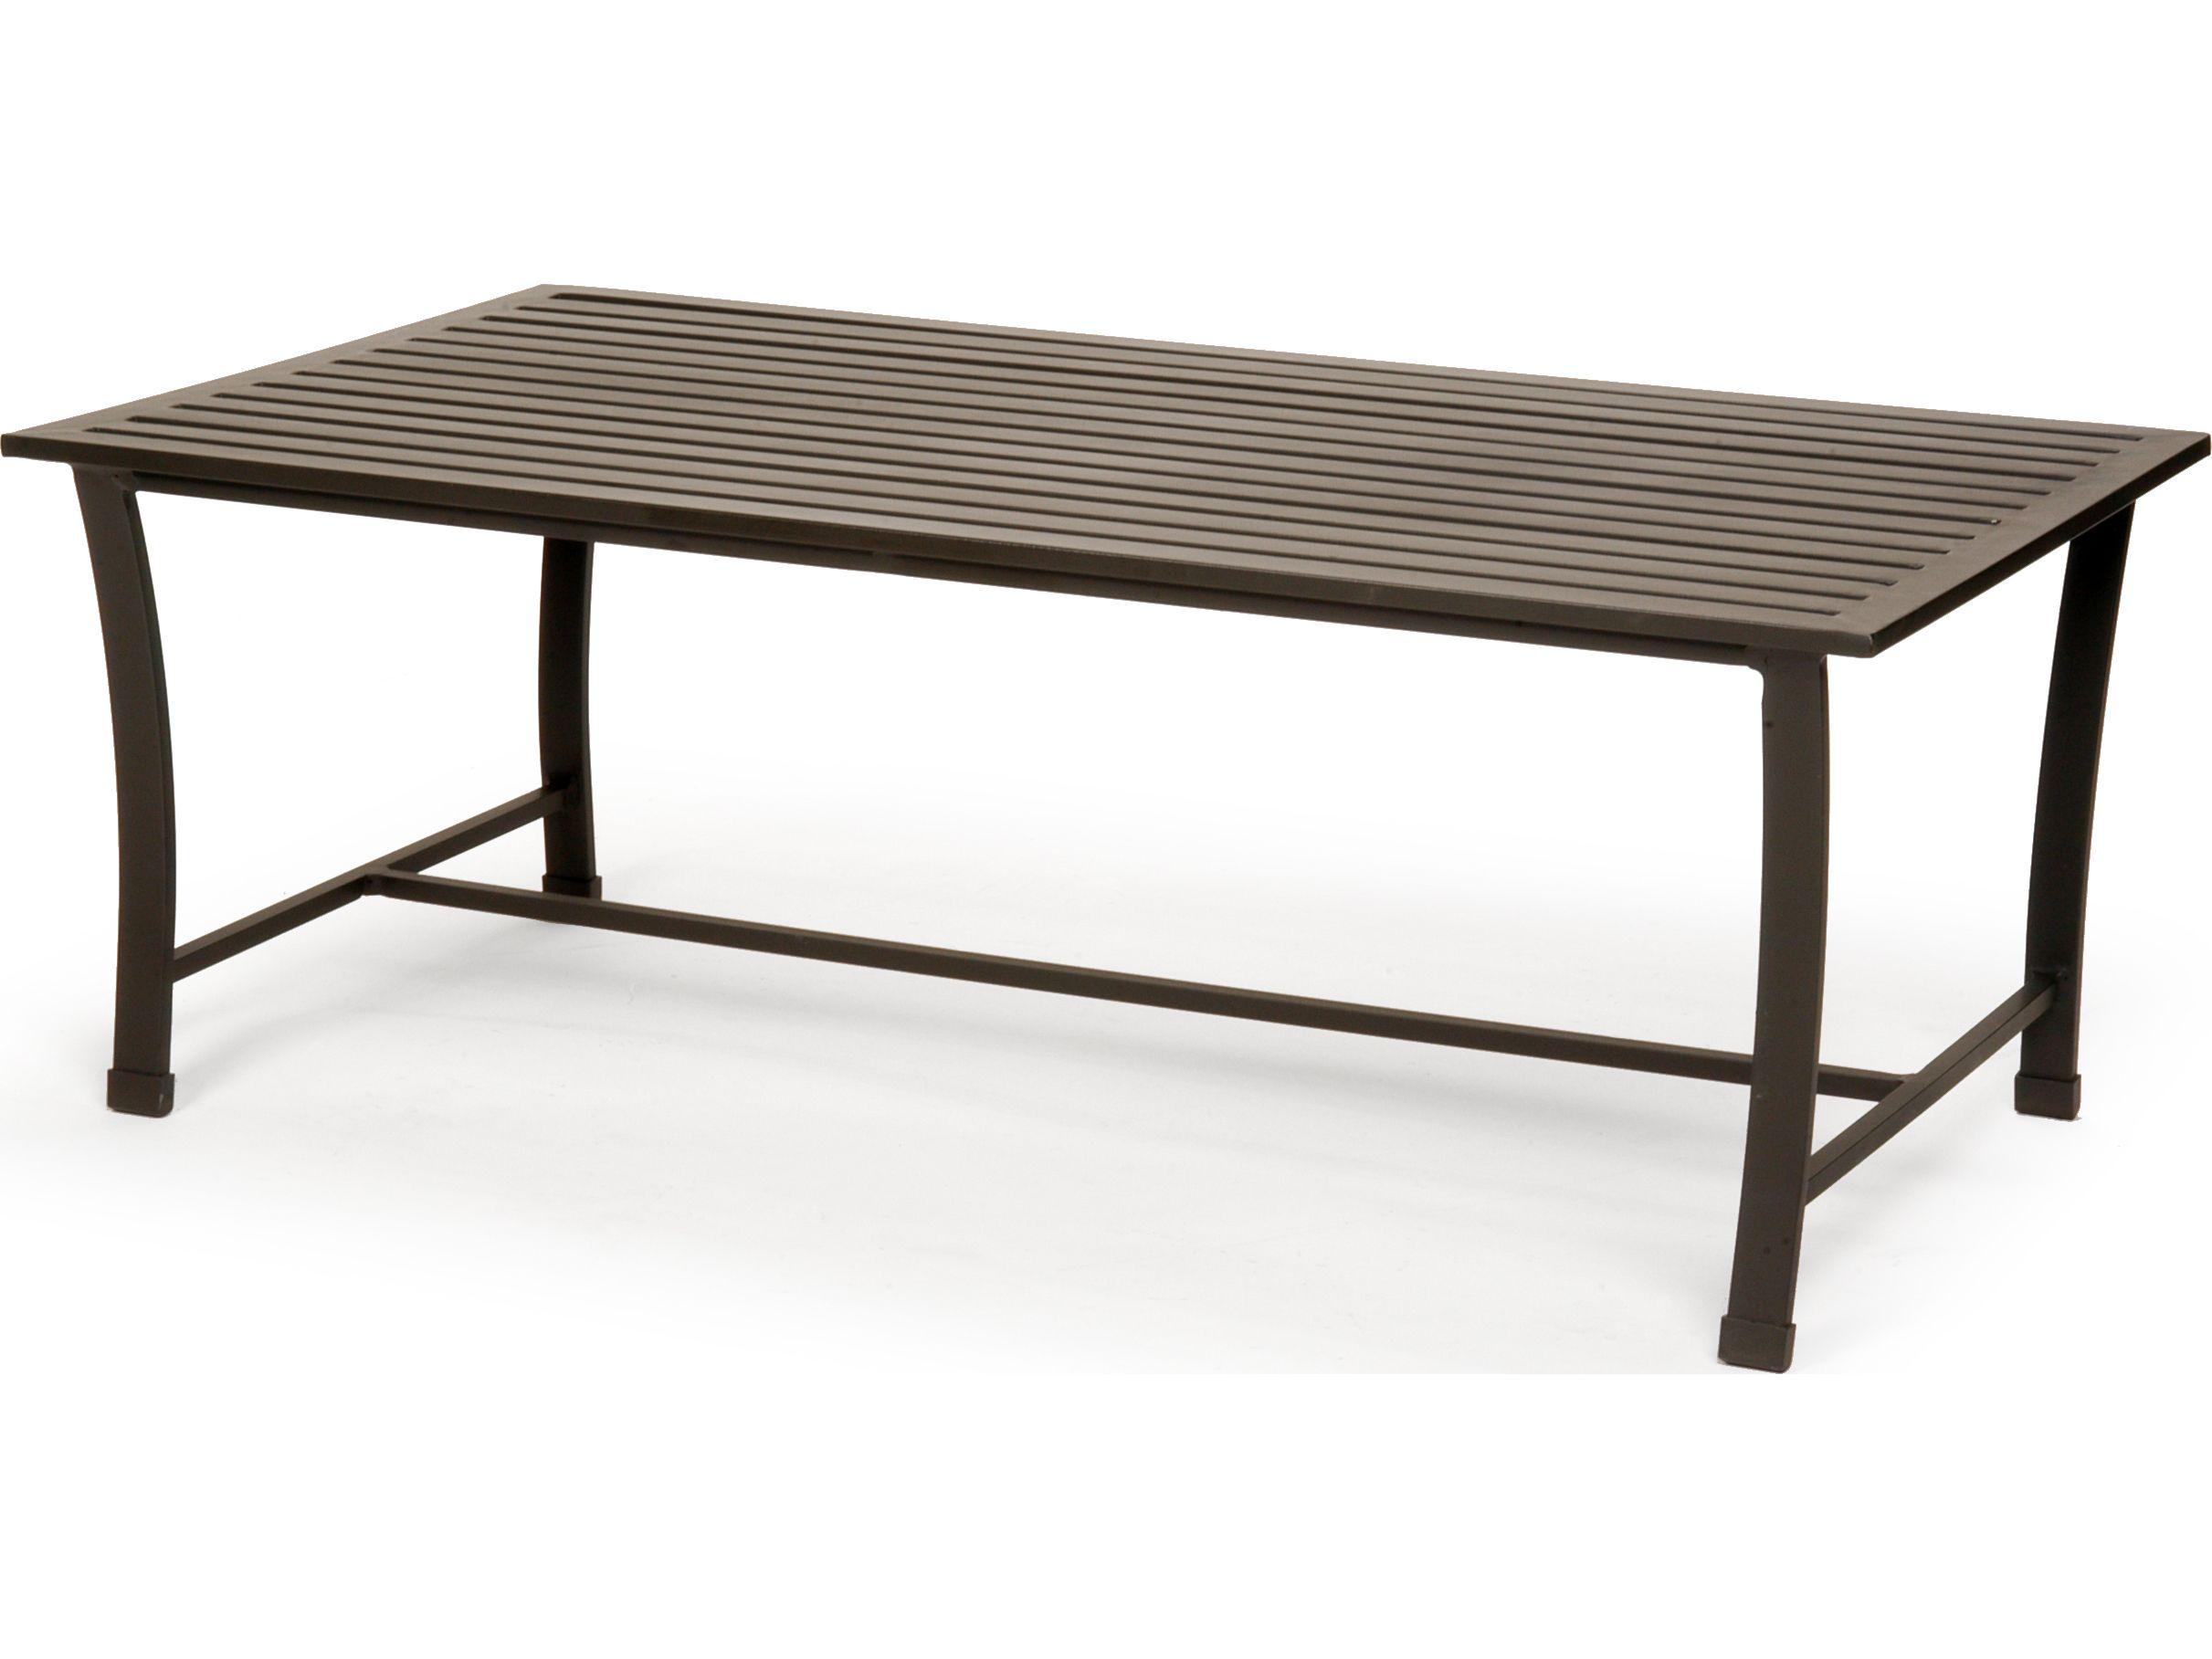 Caluco San Michele Aluminum 44 x 24 Rectangular Metal Coffee Table